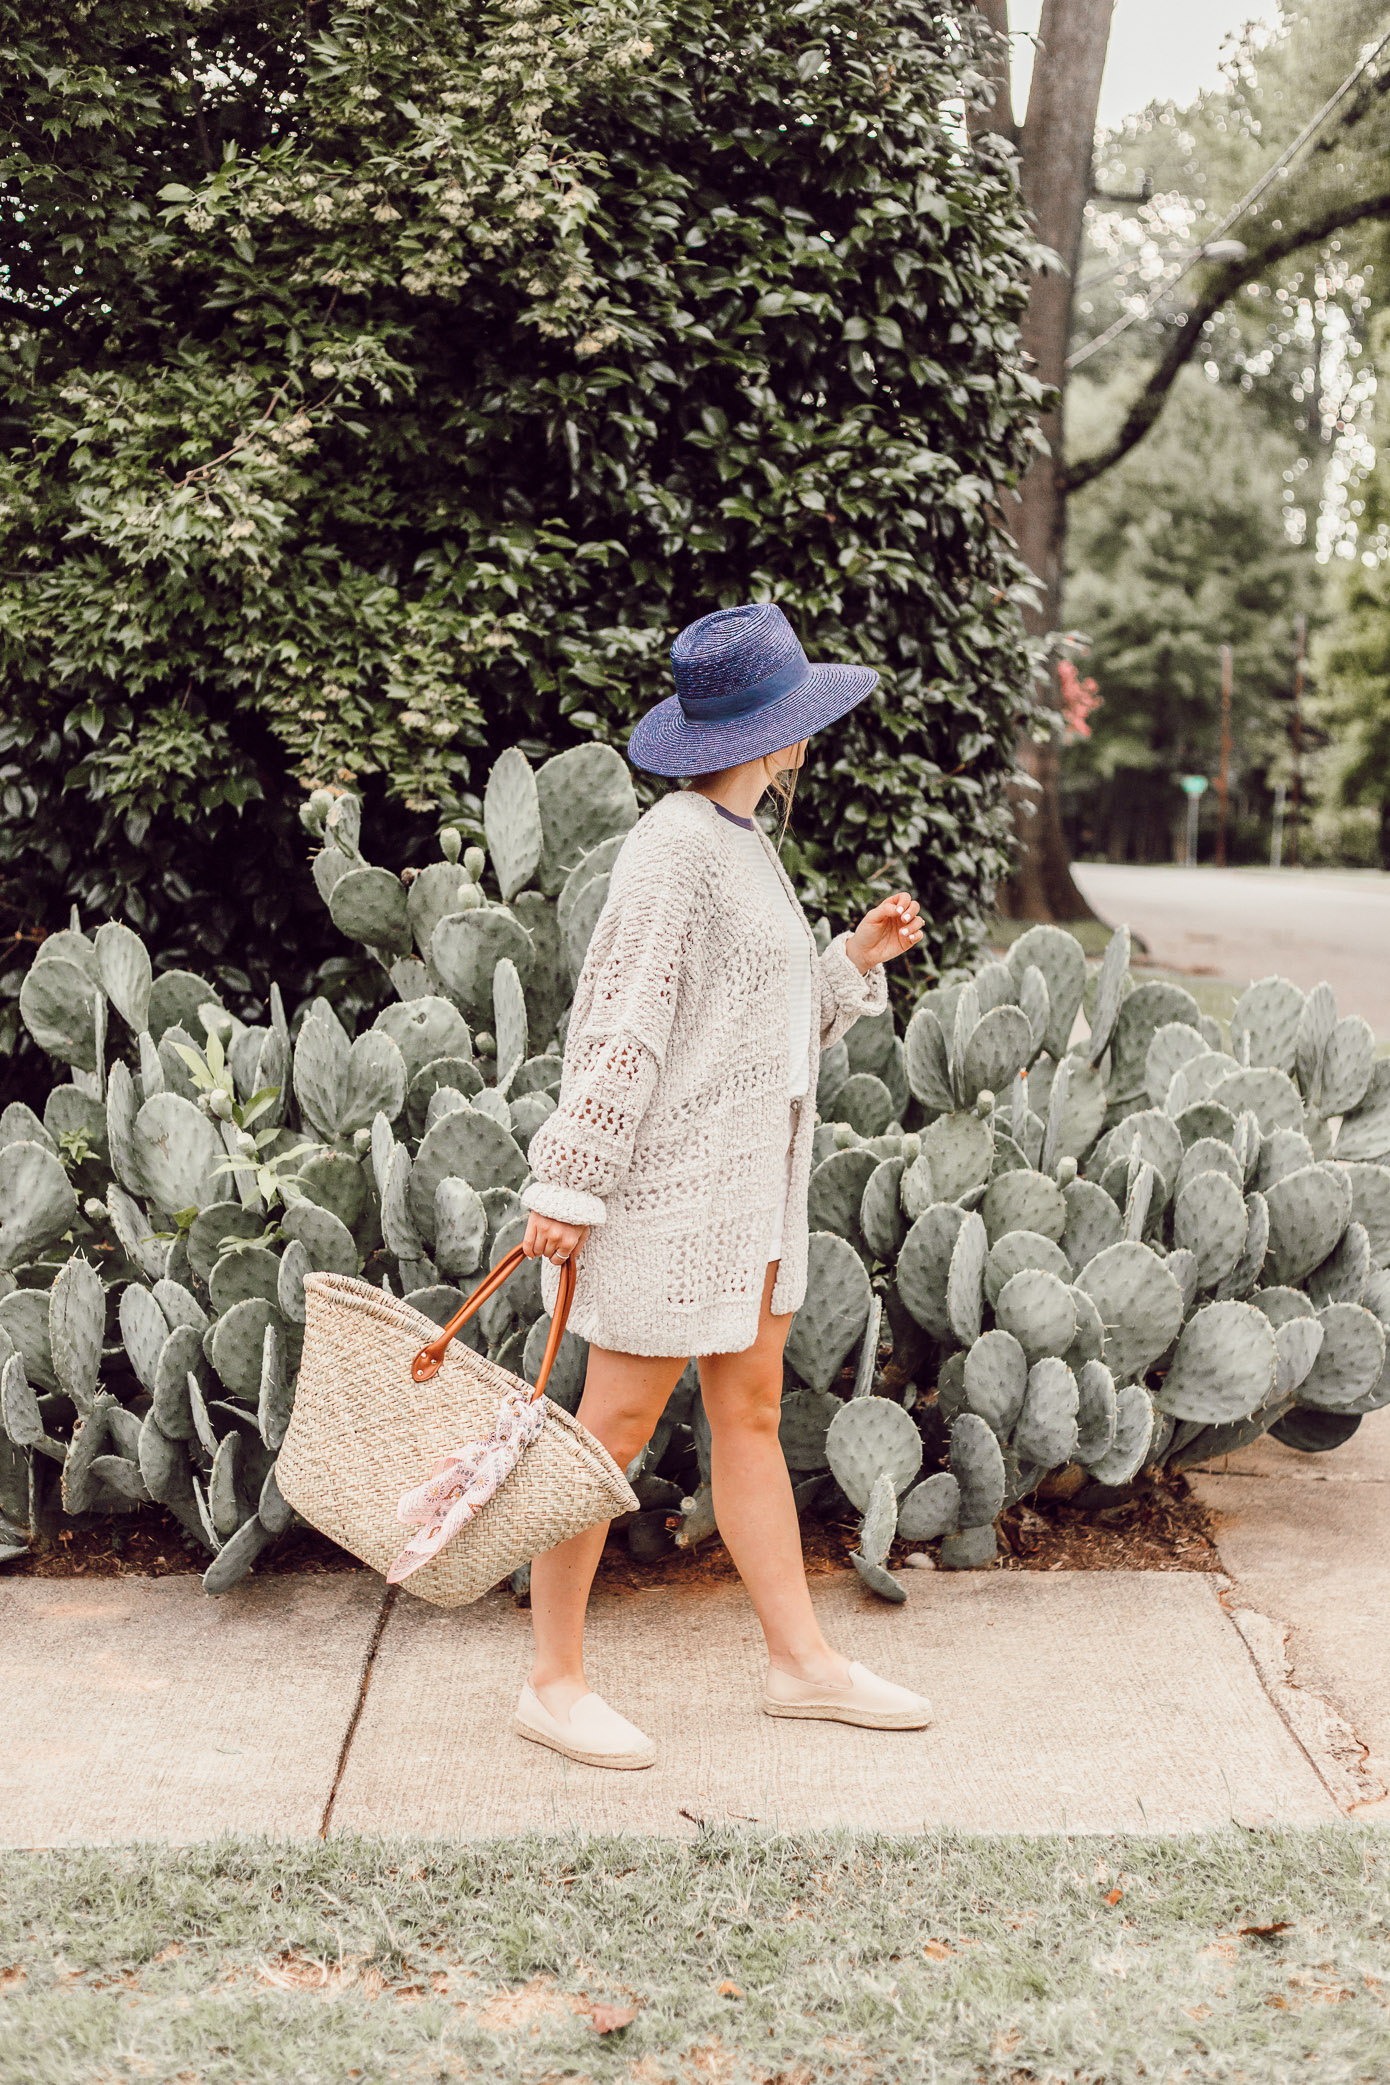 Navy Straw Hat, Free People Saturday Morning Cardigan | Casual Late Summer Outfit Idea featured on Louella Reese Life & Style Blog